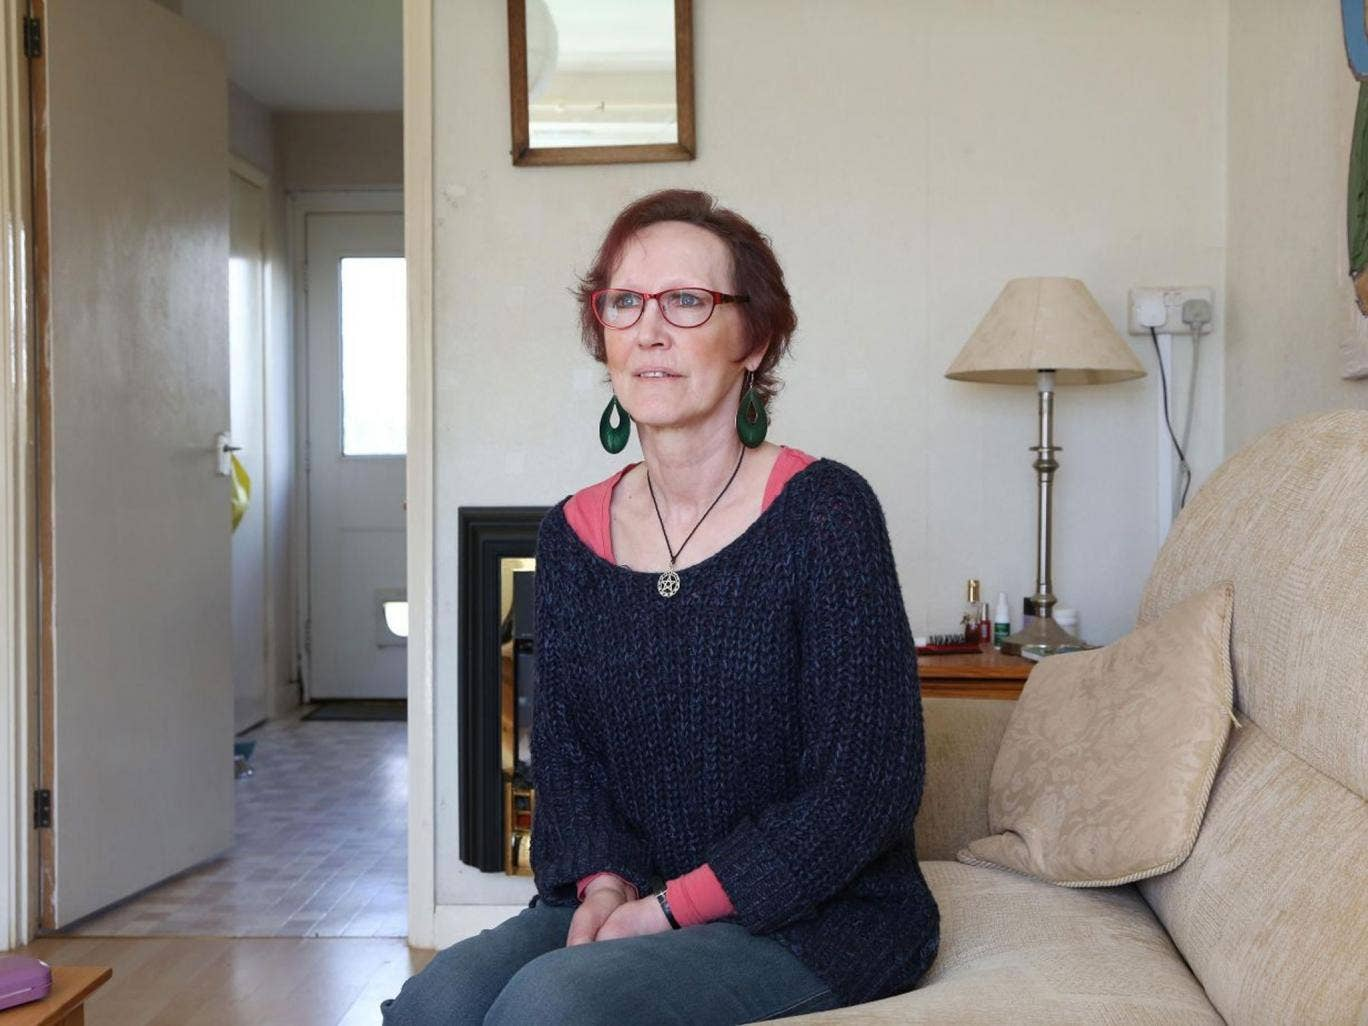 Kate Norton was diagnosed in 1997 with HIV